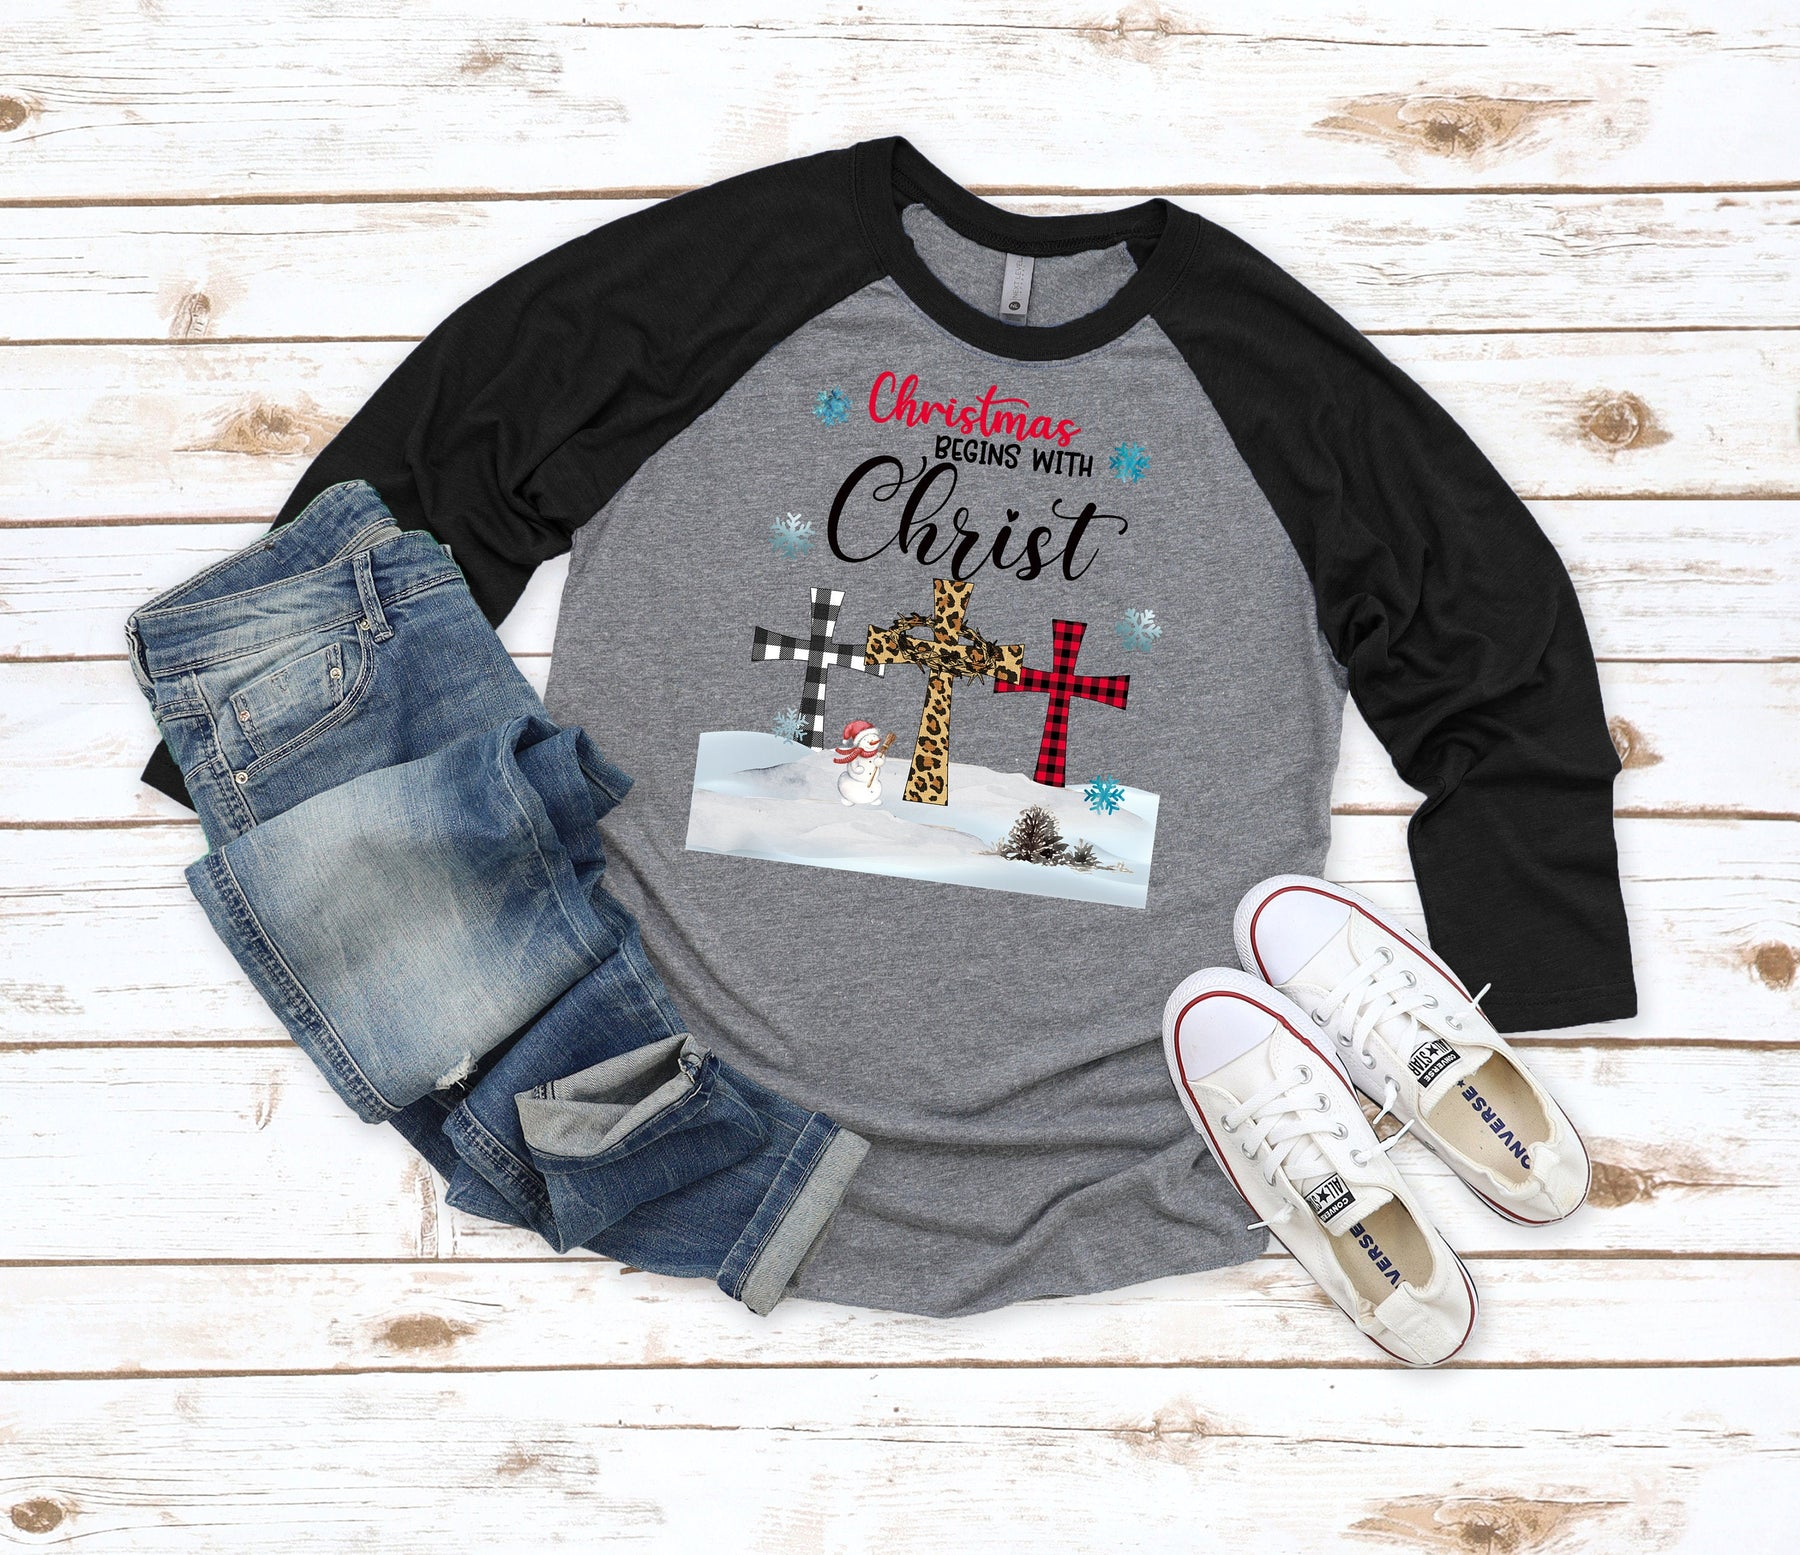 Christmas Begins with Christ Raglan shirt, Religious Christmas Shirt, christmas shirt, Christmas gnomes shirt, Christmas shirt for women